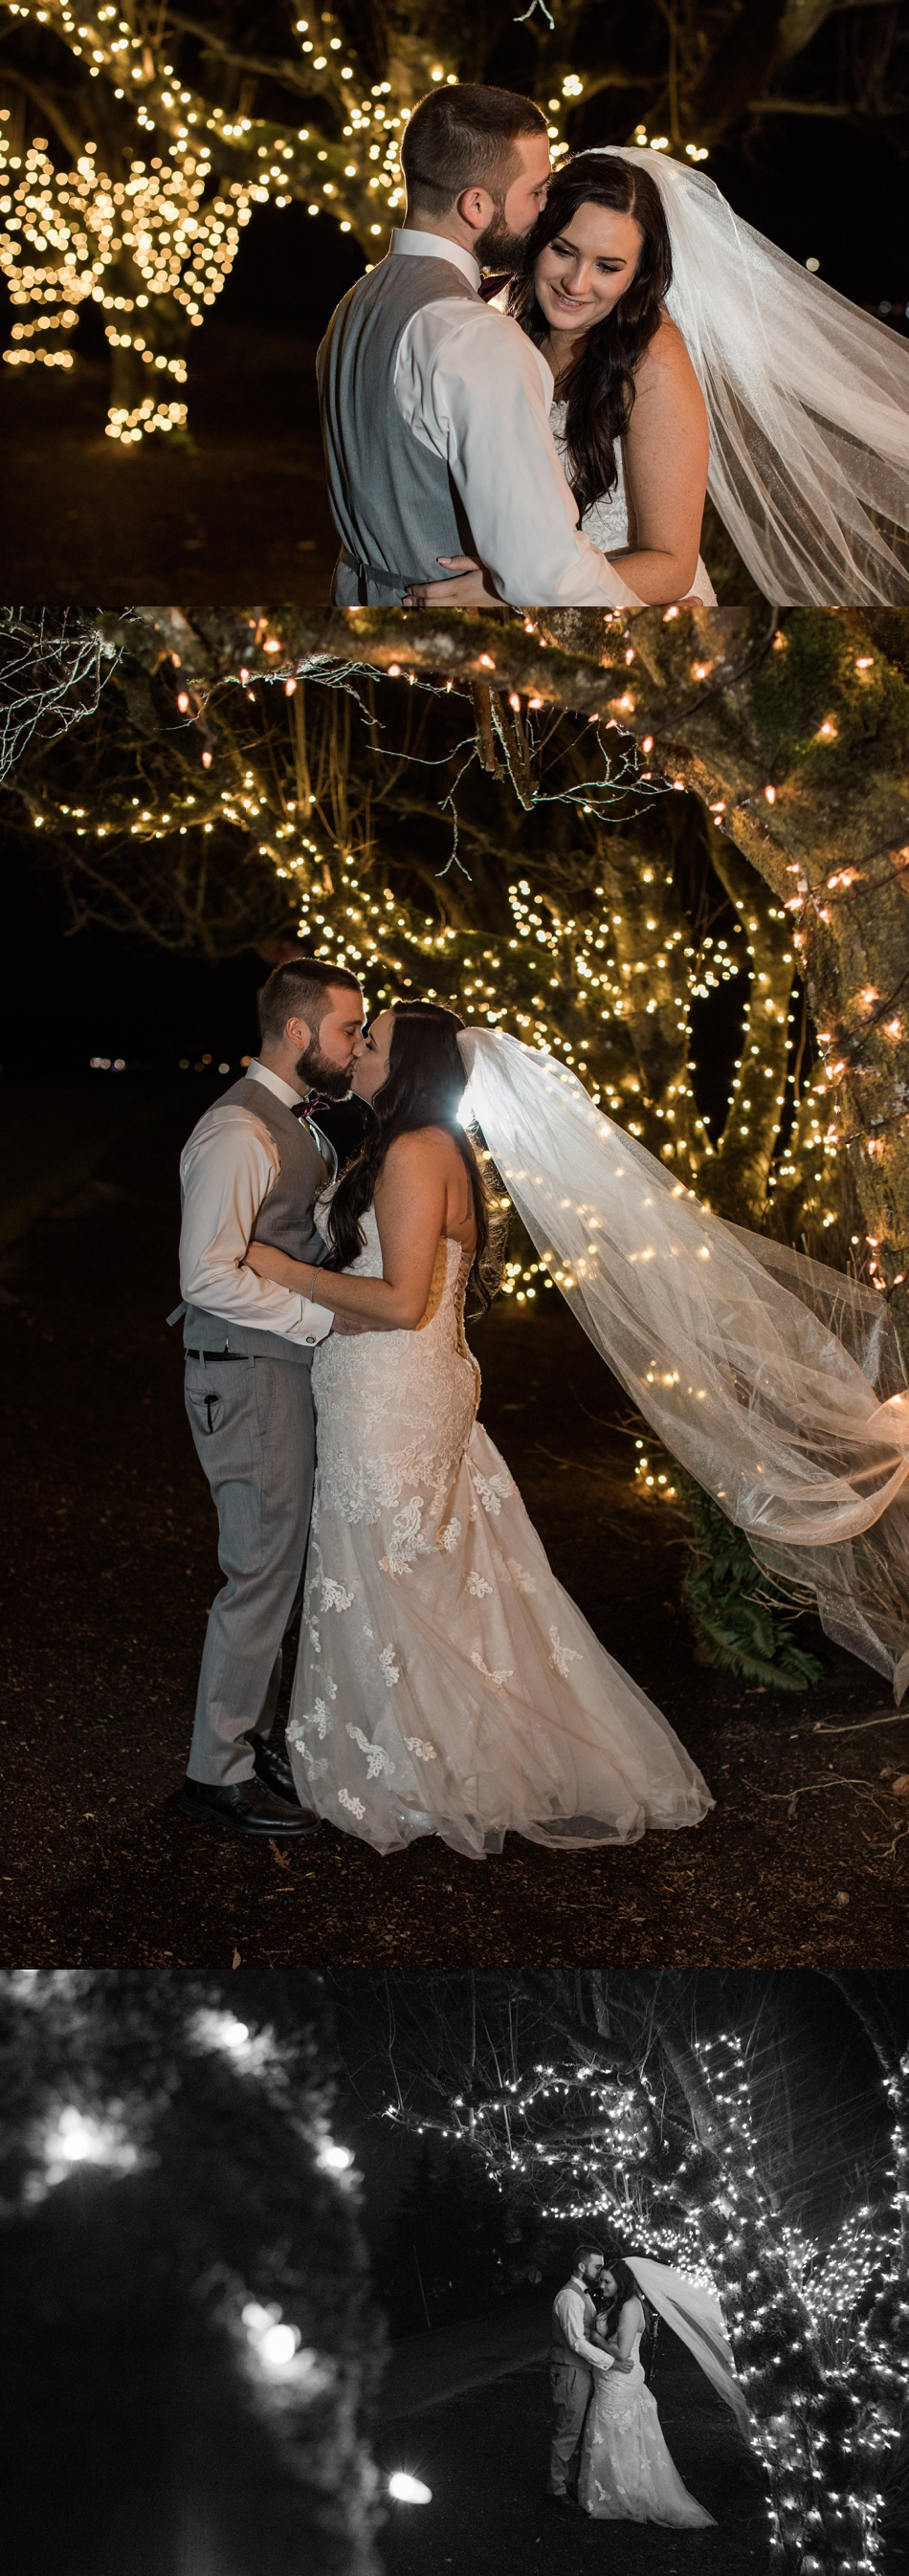 A bride and groom embrace and kiss during their winter wedding at Hidden Meadows in Snohomish, a wedding venue near Seattle, WA. | Joanna Monger Photography | Snohomish & Seattle Wedding Photographer